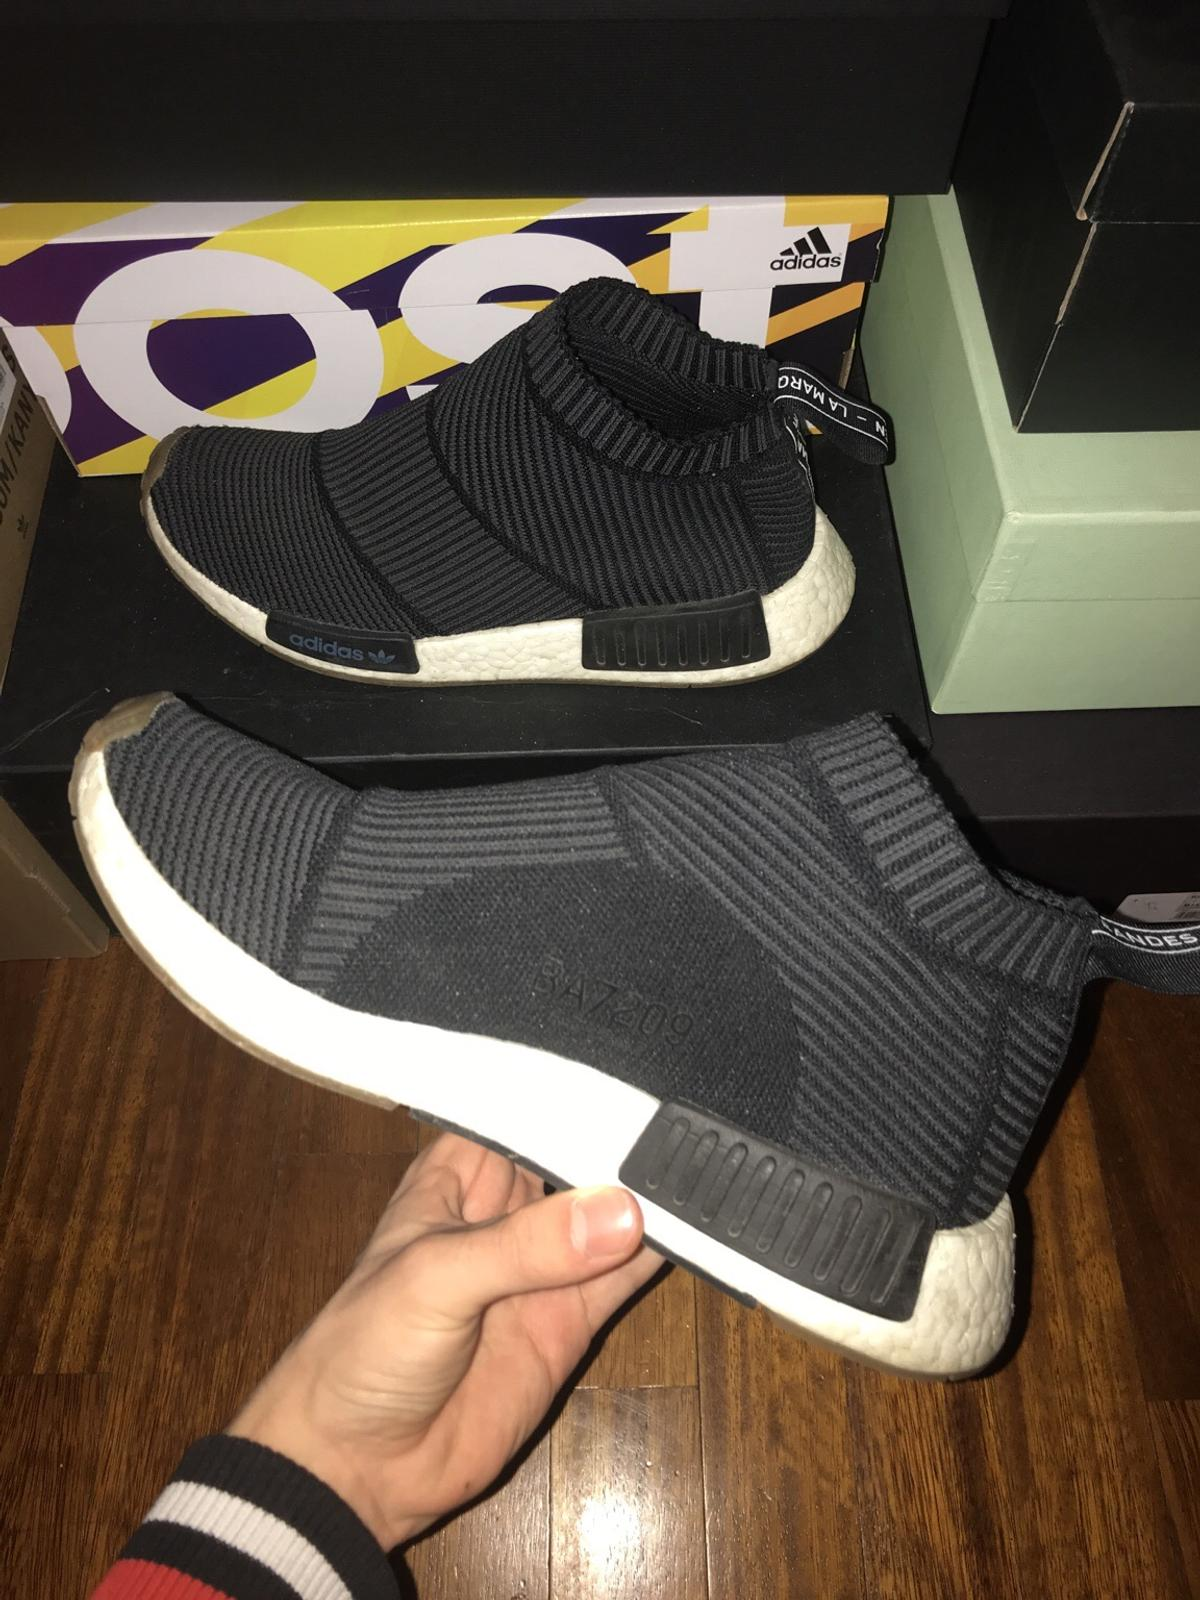 a80df384e68dc Adidas Nmd CS1 in 10141 Torino for €180.00 for sale - Shpock